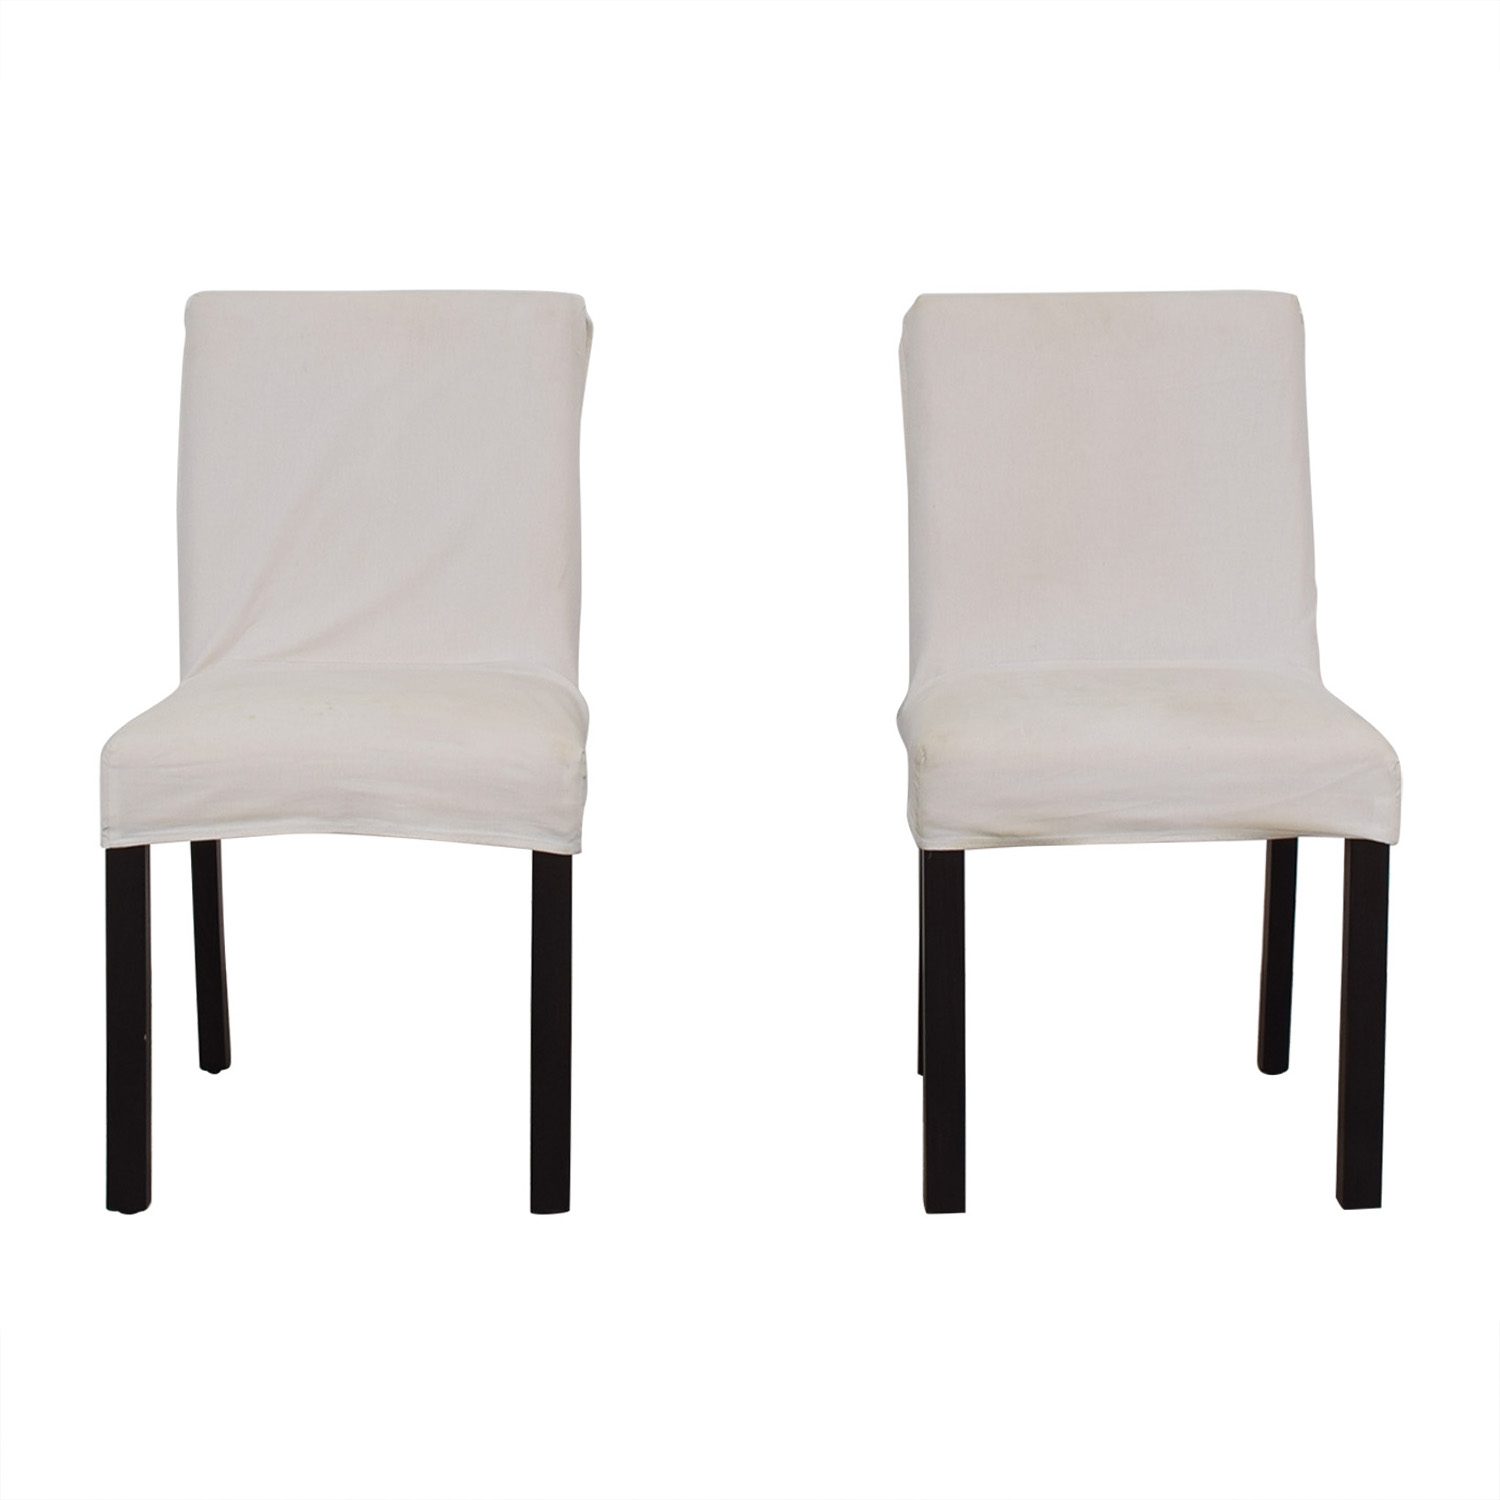 Crate & Barrel Crate & Barrel White Chairs on sale